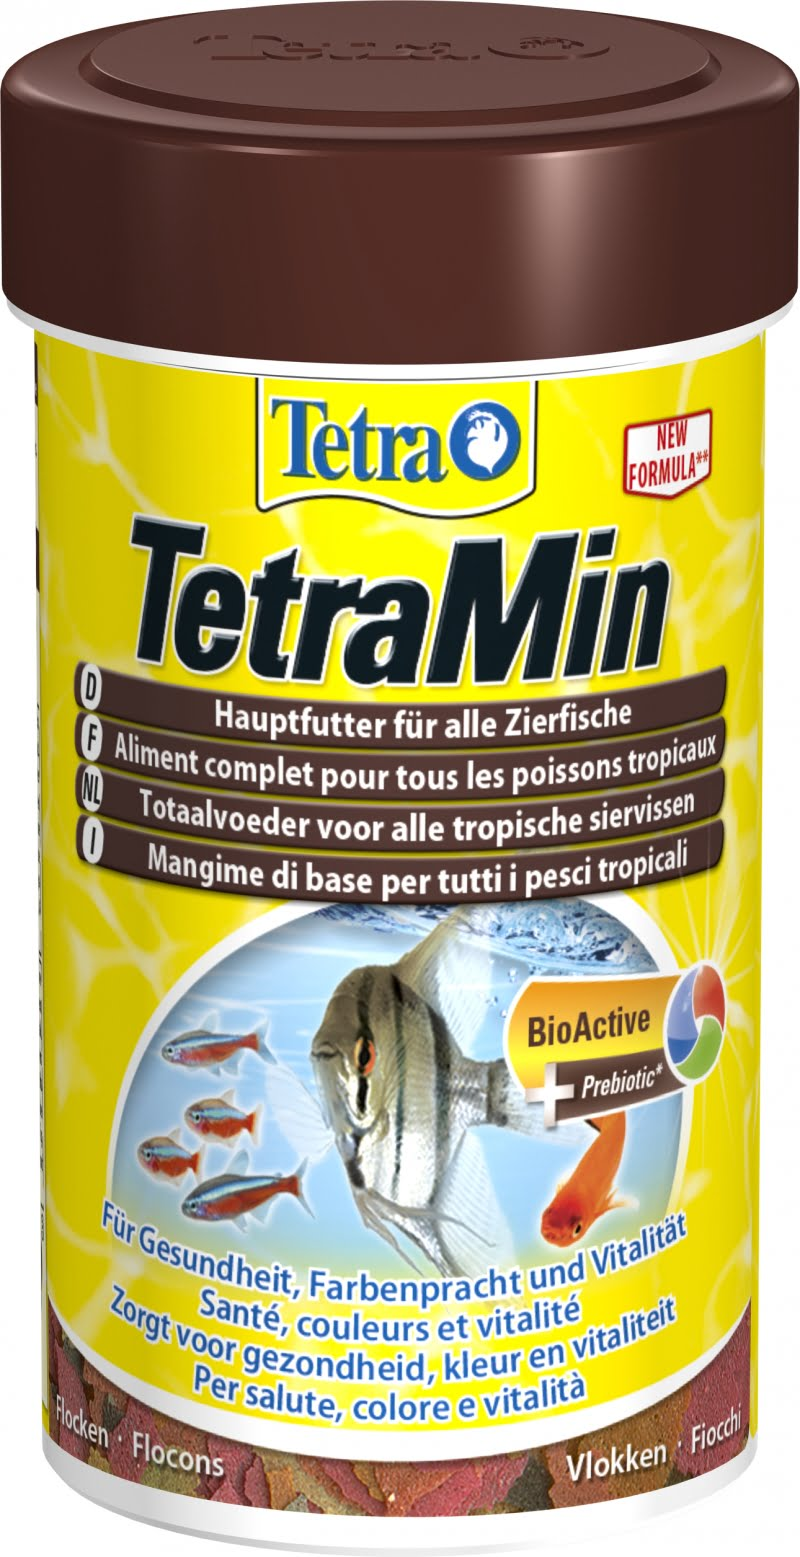 Tetramin Bio-active 100ml